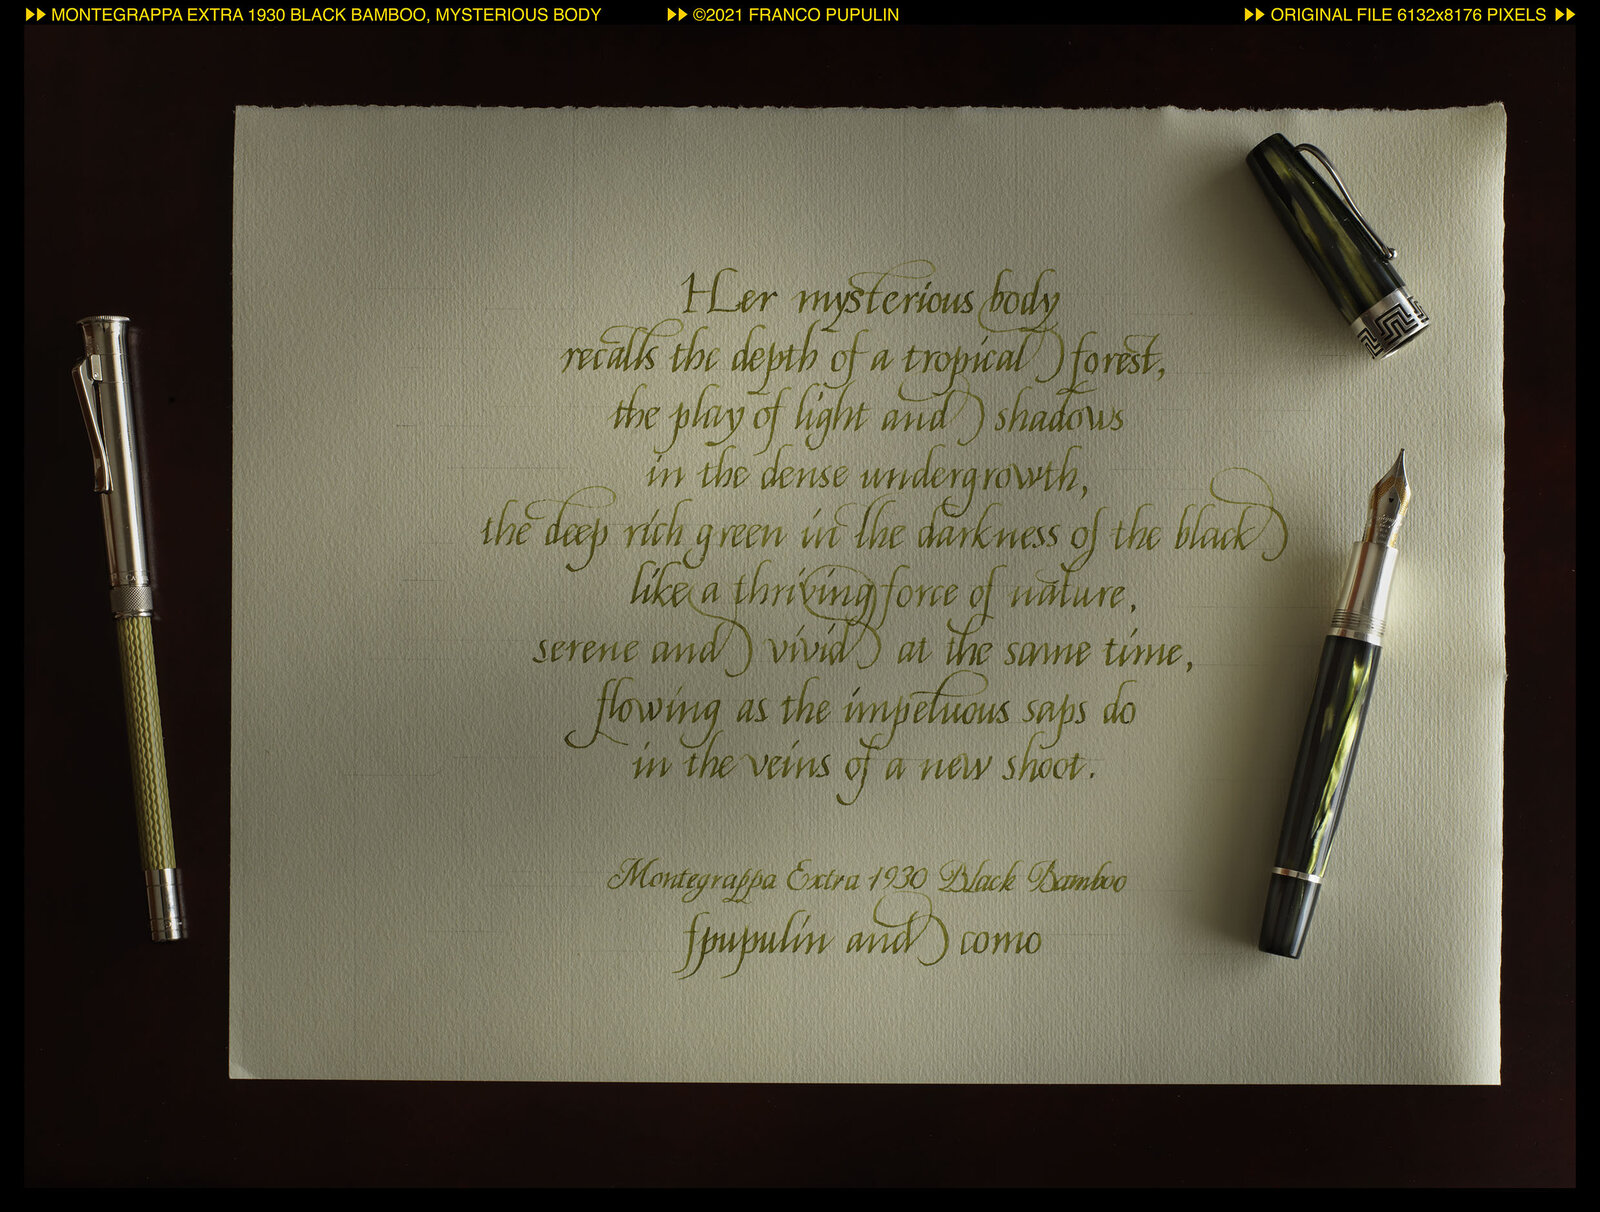 Montegrappa Extra 1930 Black Bamboo, Mysterious body ©FP.jpg